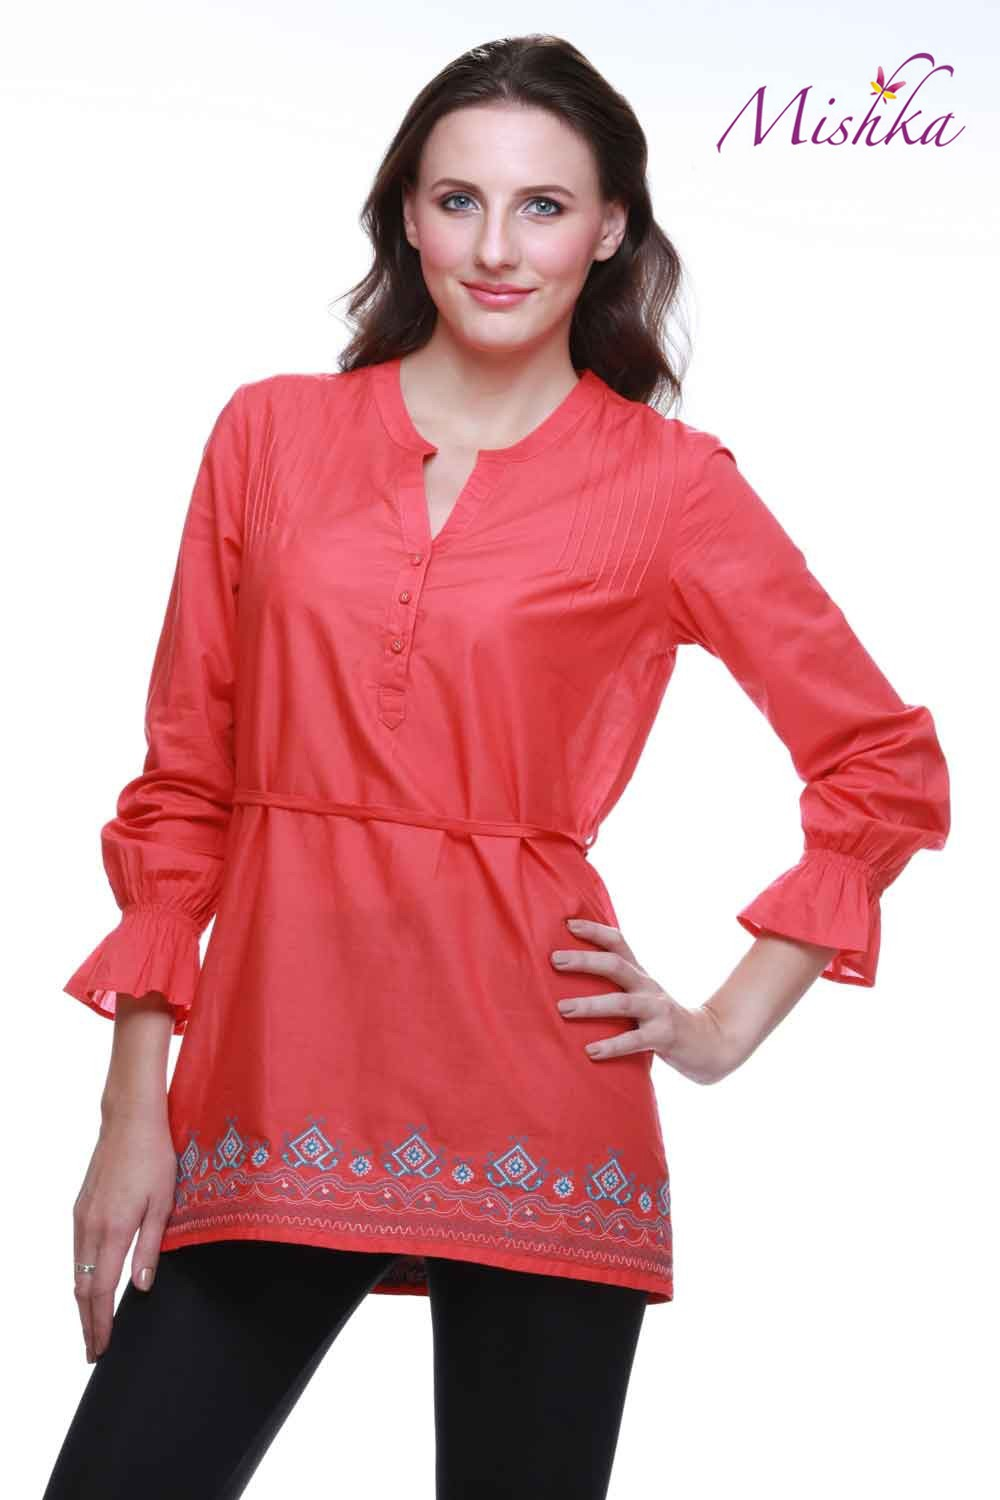 Shop Stein Mart's collection of fashion tunics today. Our selection of women's tunic blouses, women's tunic tees & more has all the brands you love for less!